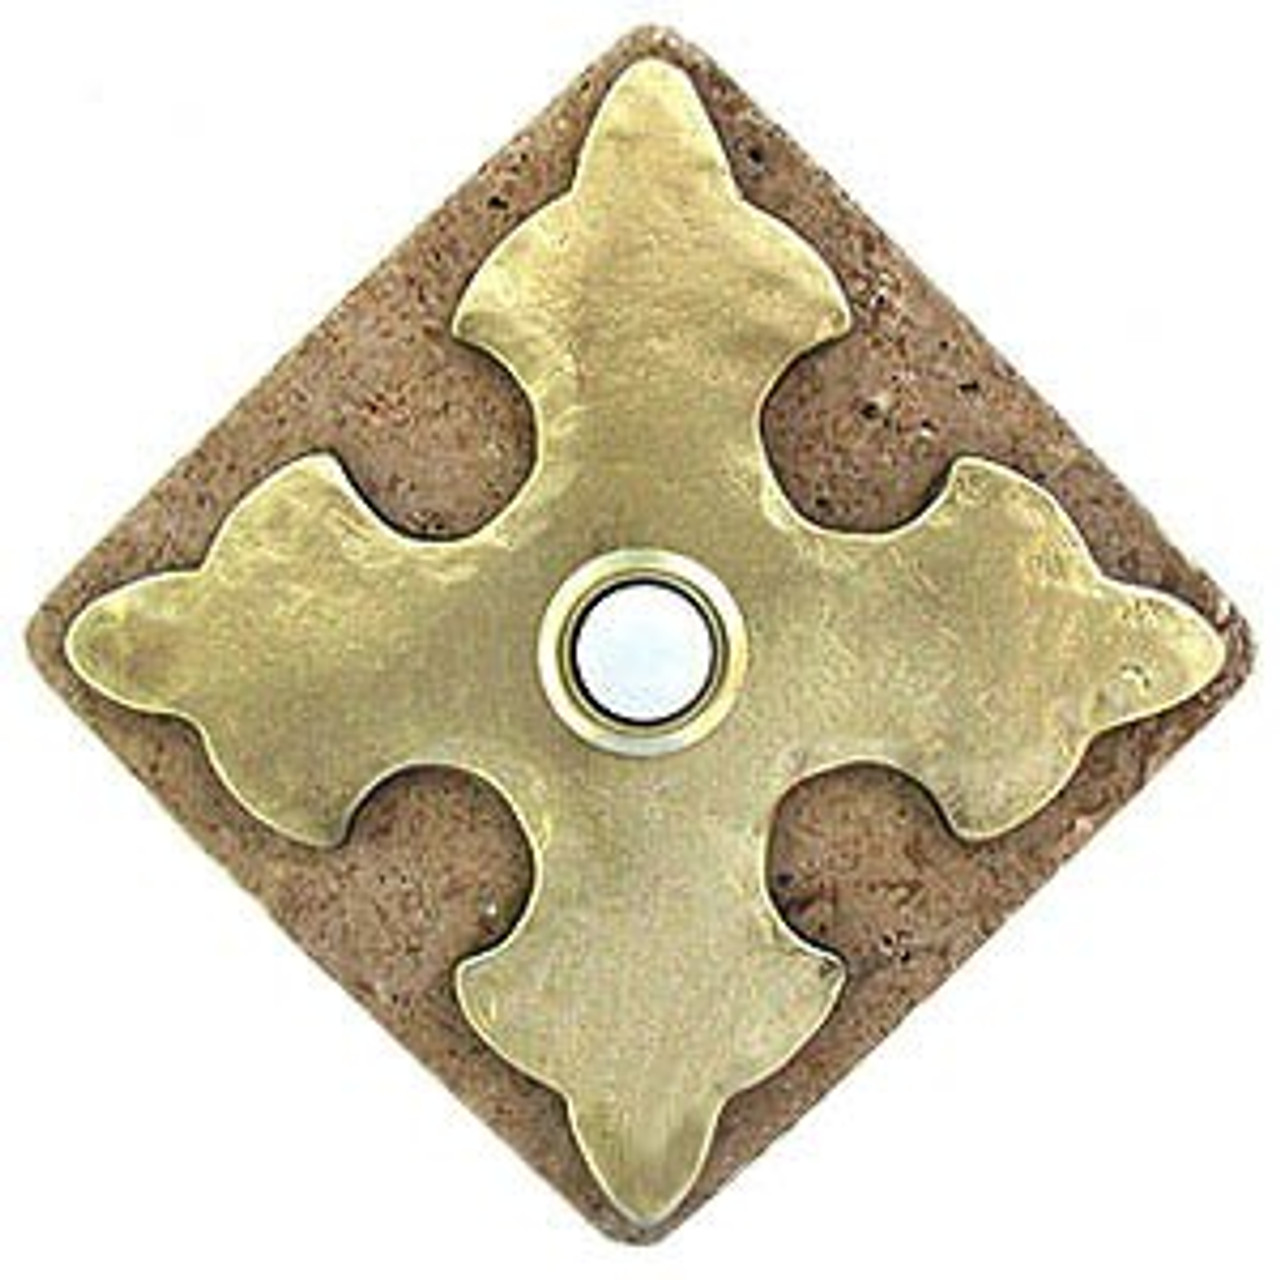 Picture of: Cross Doorbell Button On Stone 360 Yardware